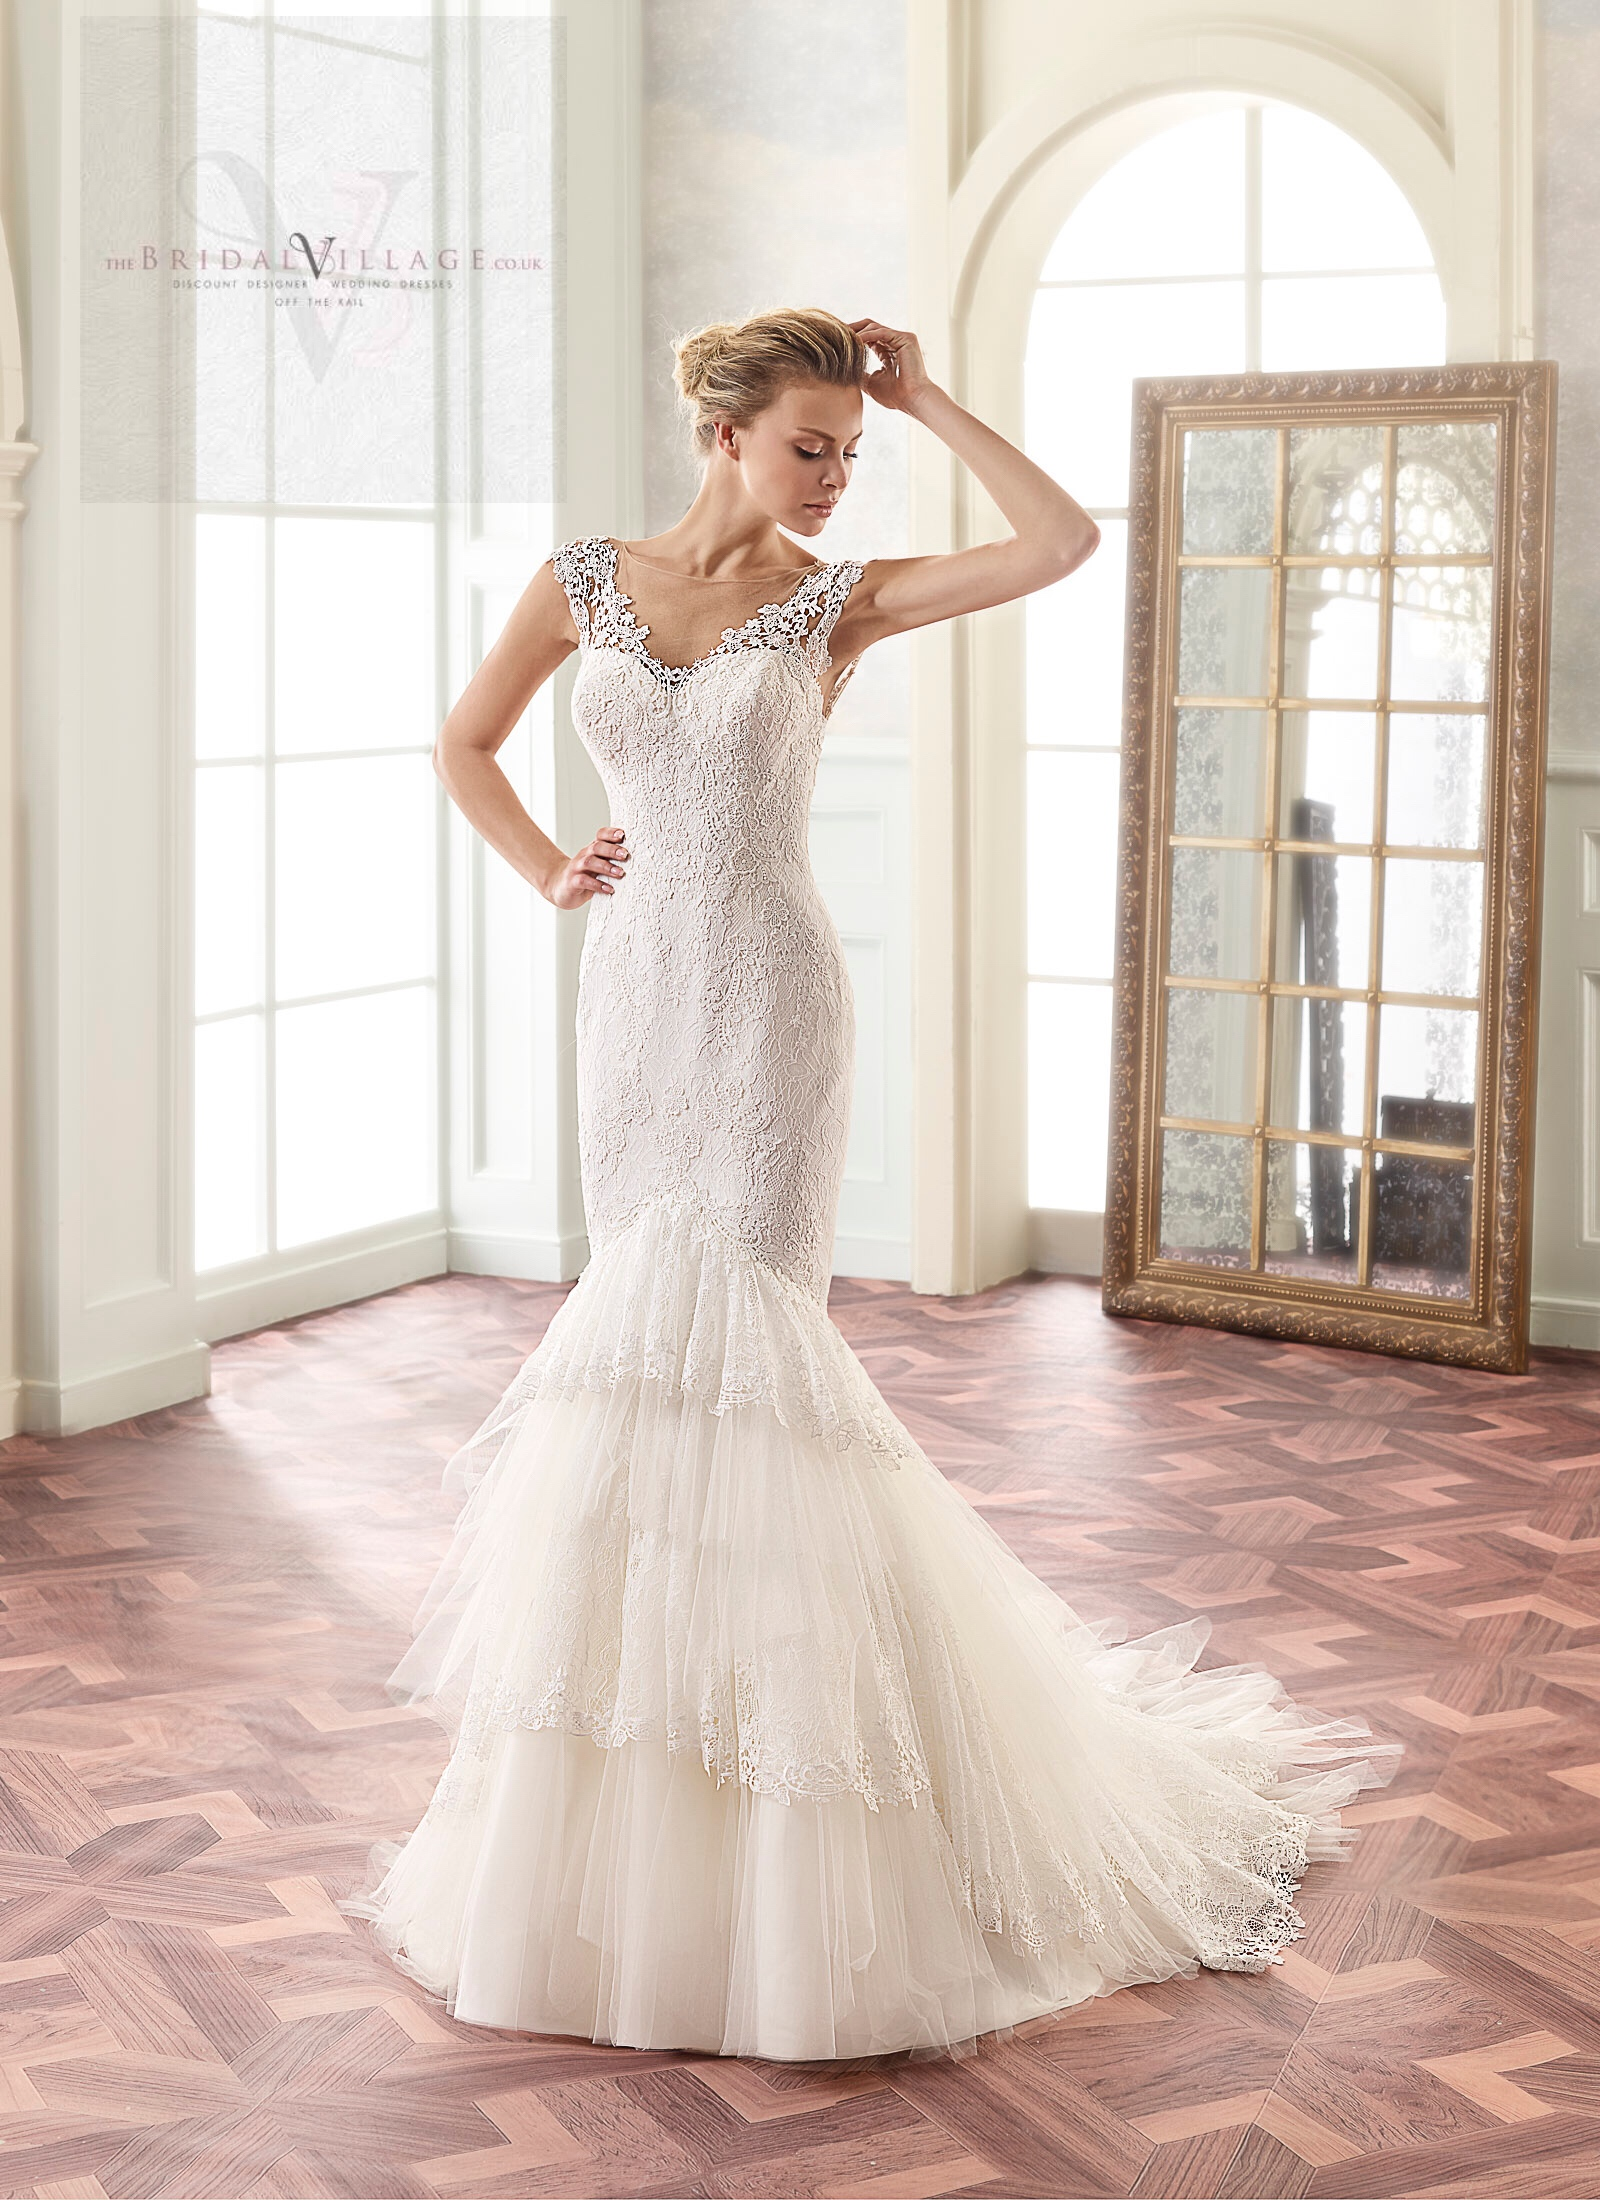 Bridal Boutiques The Bridal Village Uk Wedding Dresses Uk